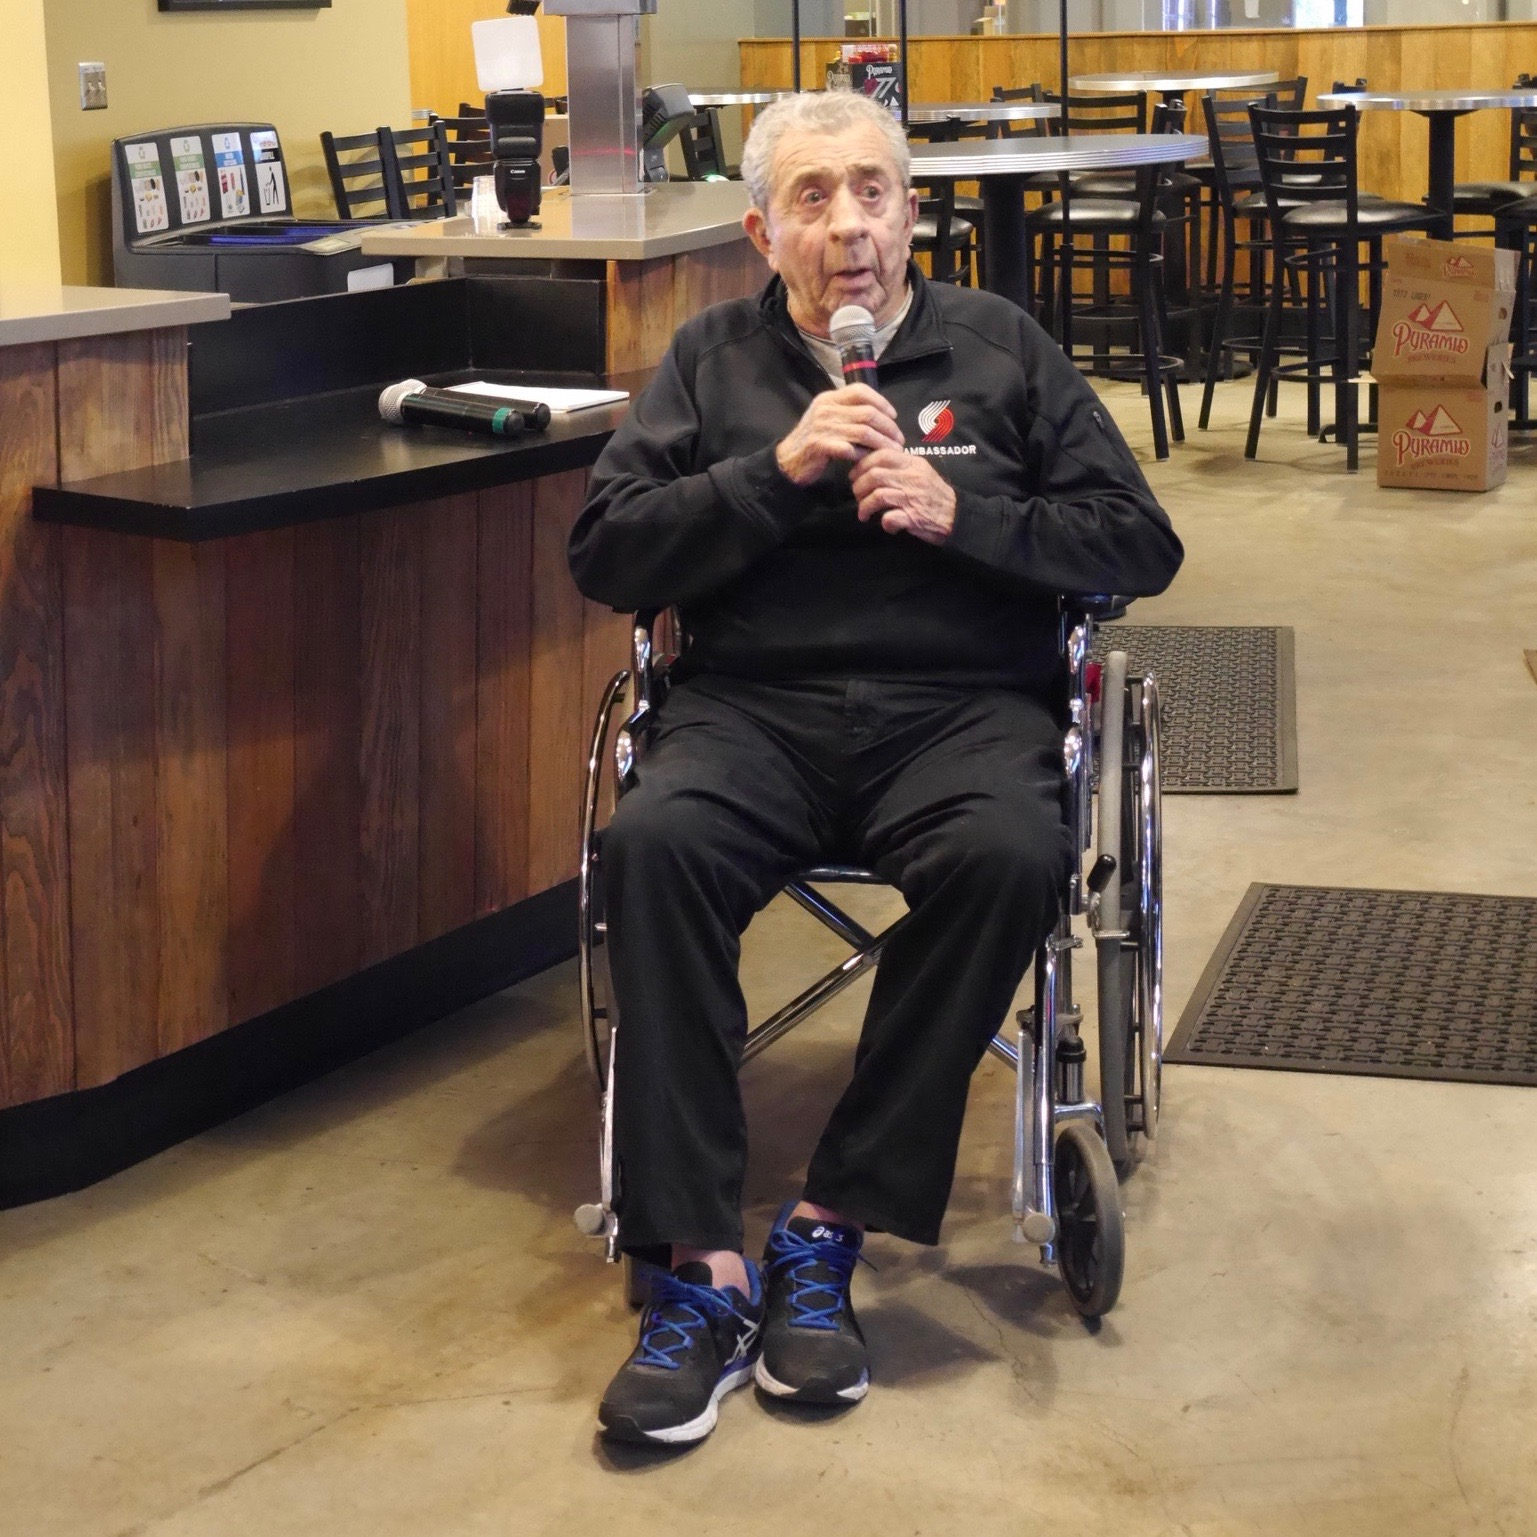 Harry Glickman, one of the co-founders of the Portland Trail Blazers in 1977 speaks about his team winning the 1977 NBA Championship. (photo by Cat Stelzer)